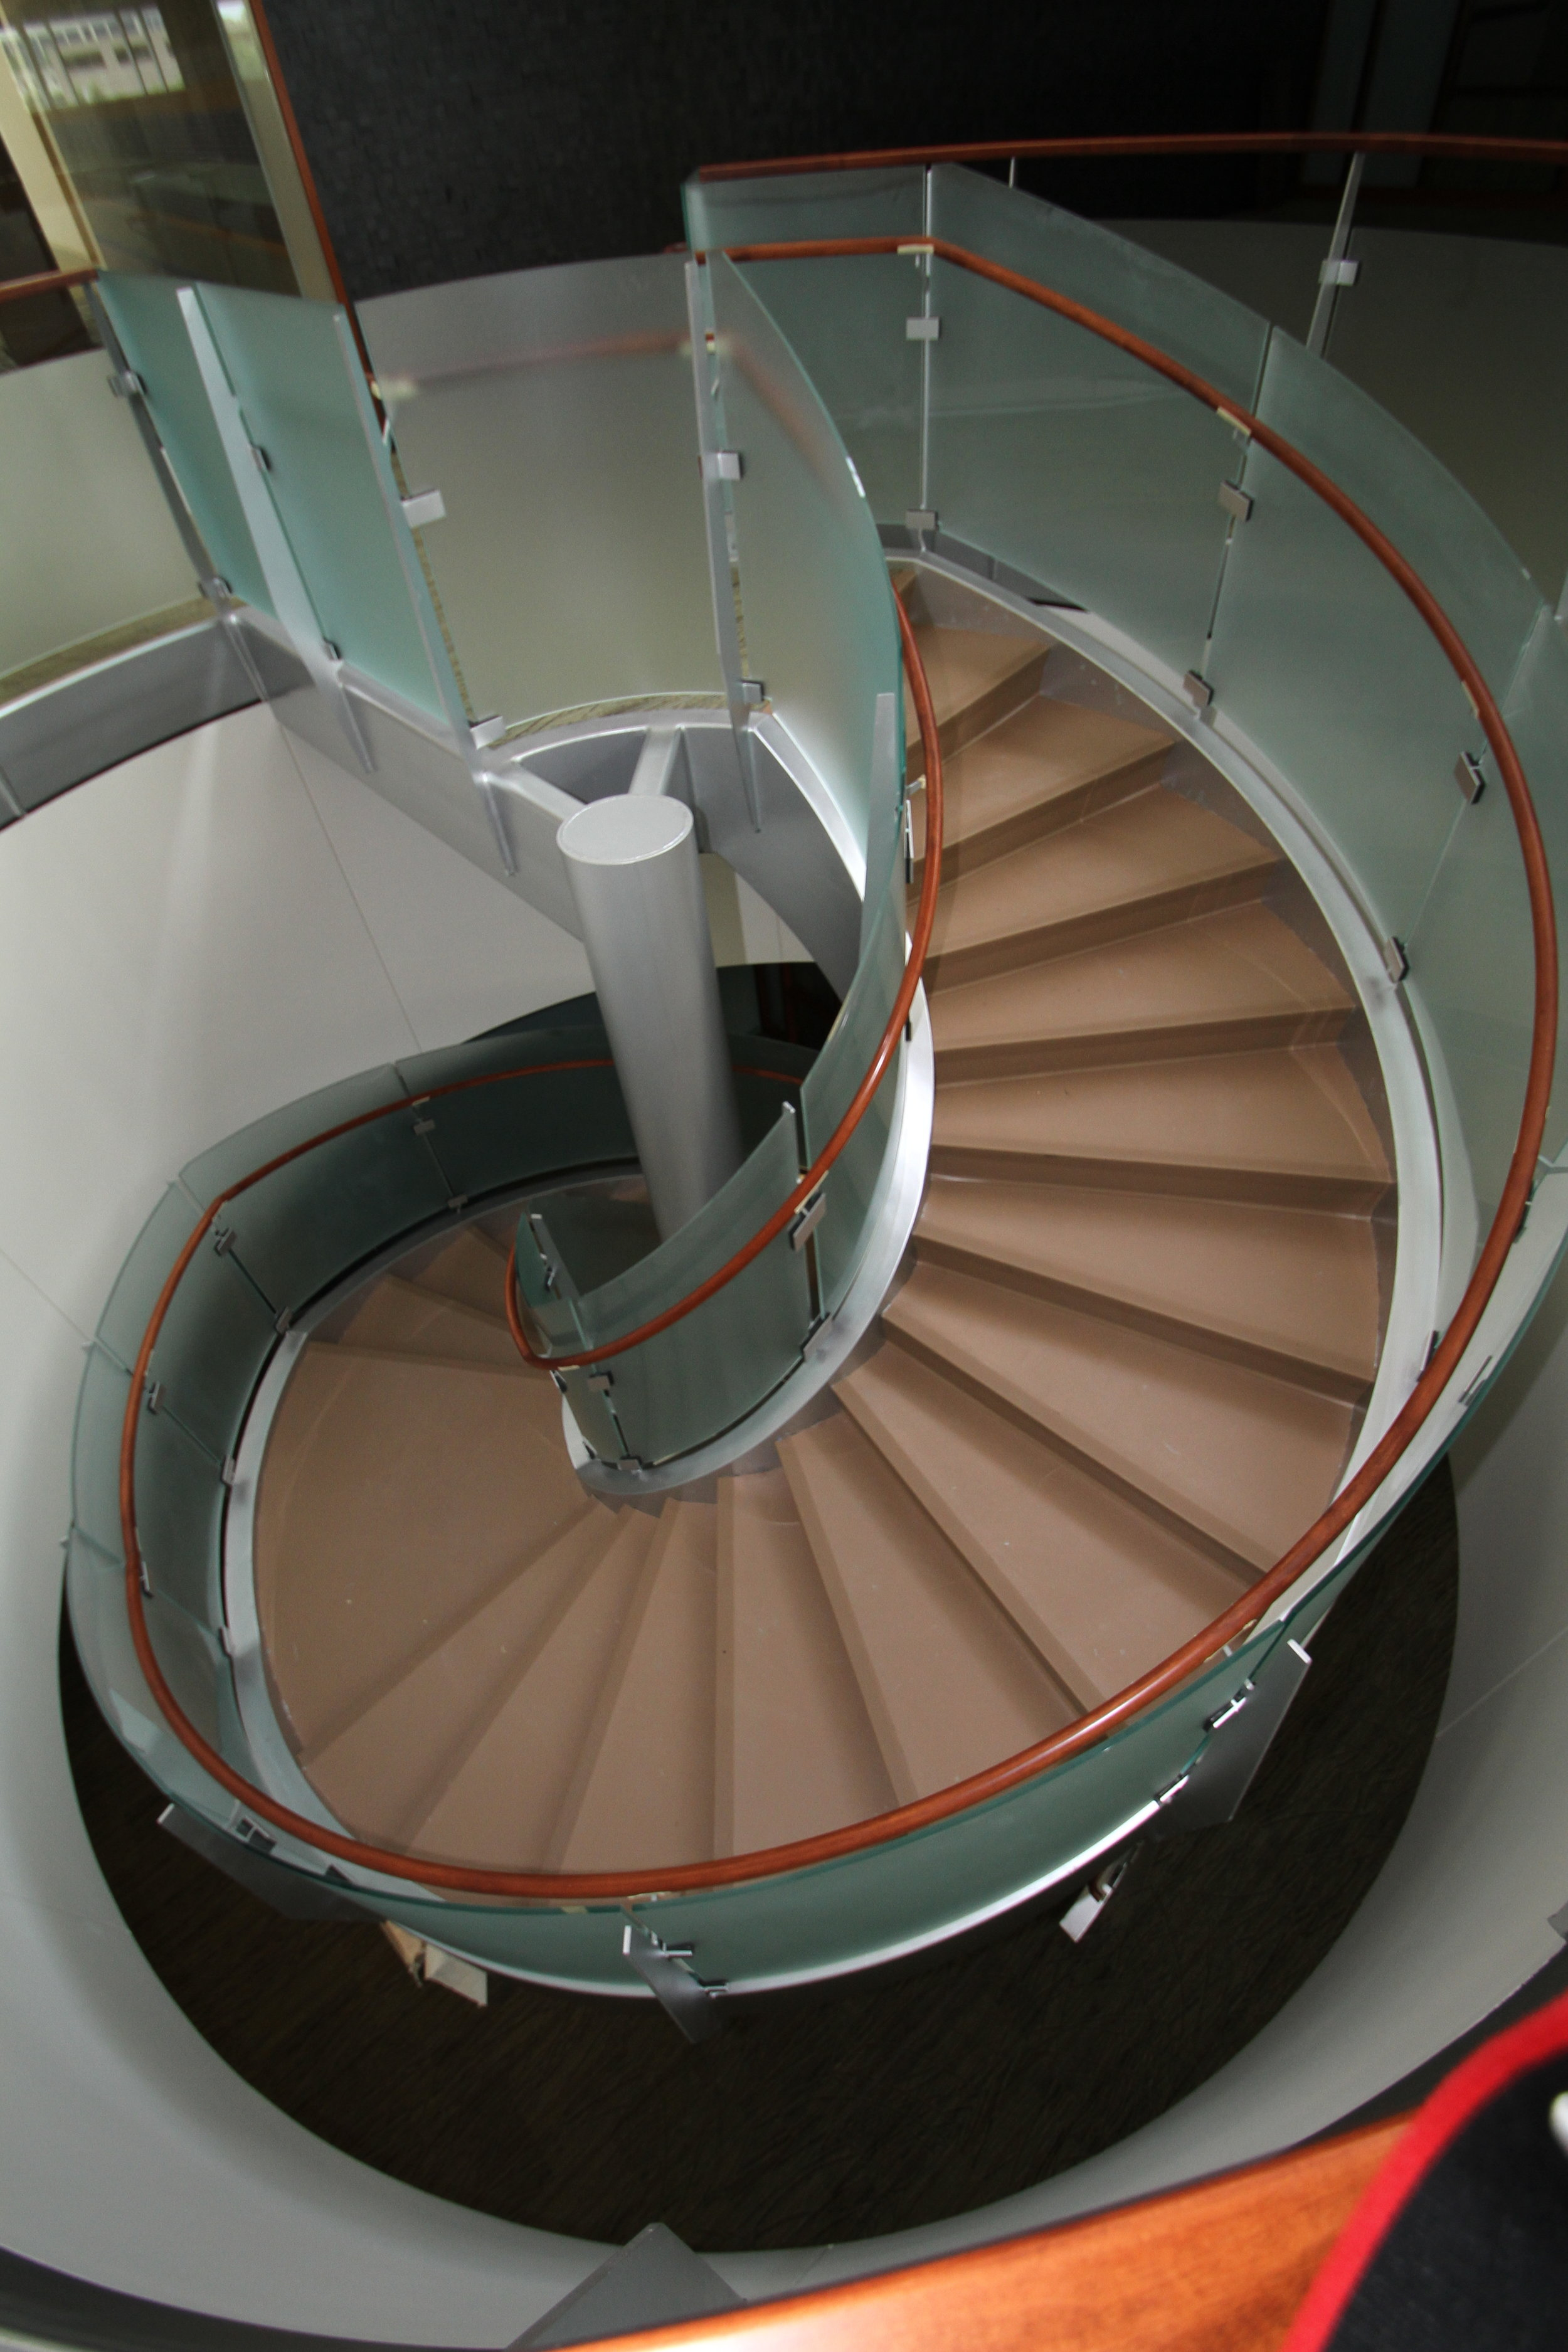 City Glass_Staircase_Farm Credit Services 3.JPG